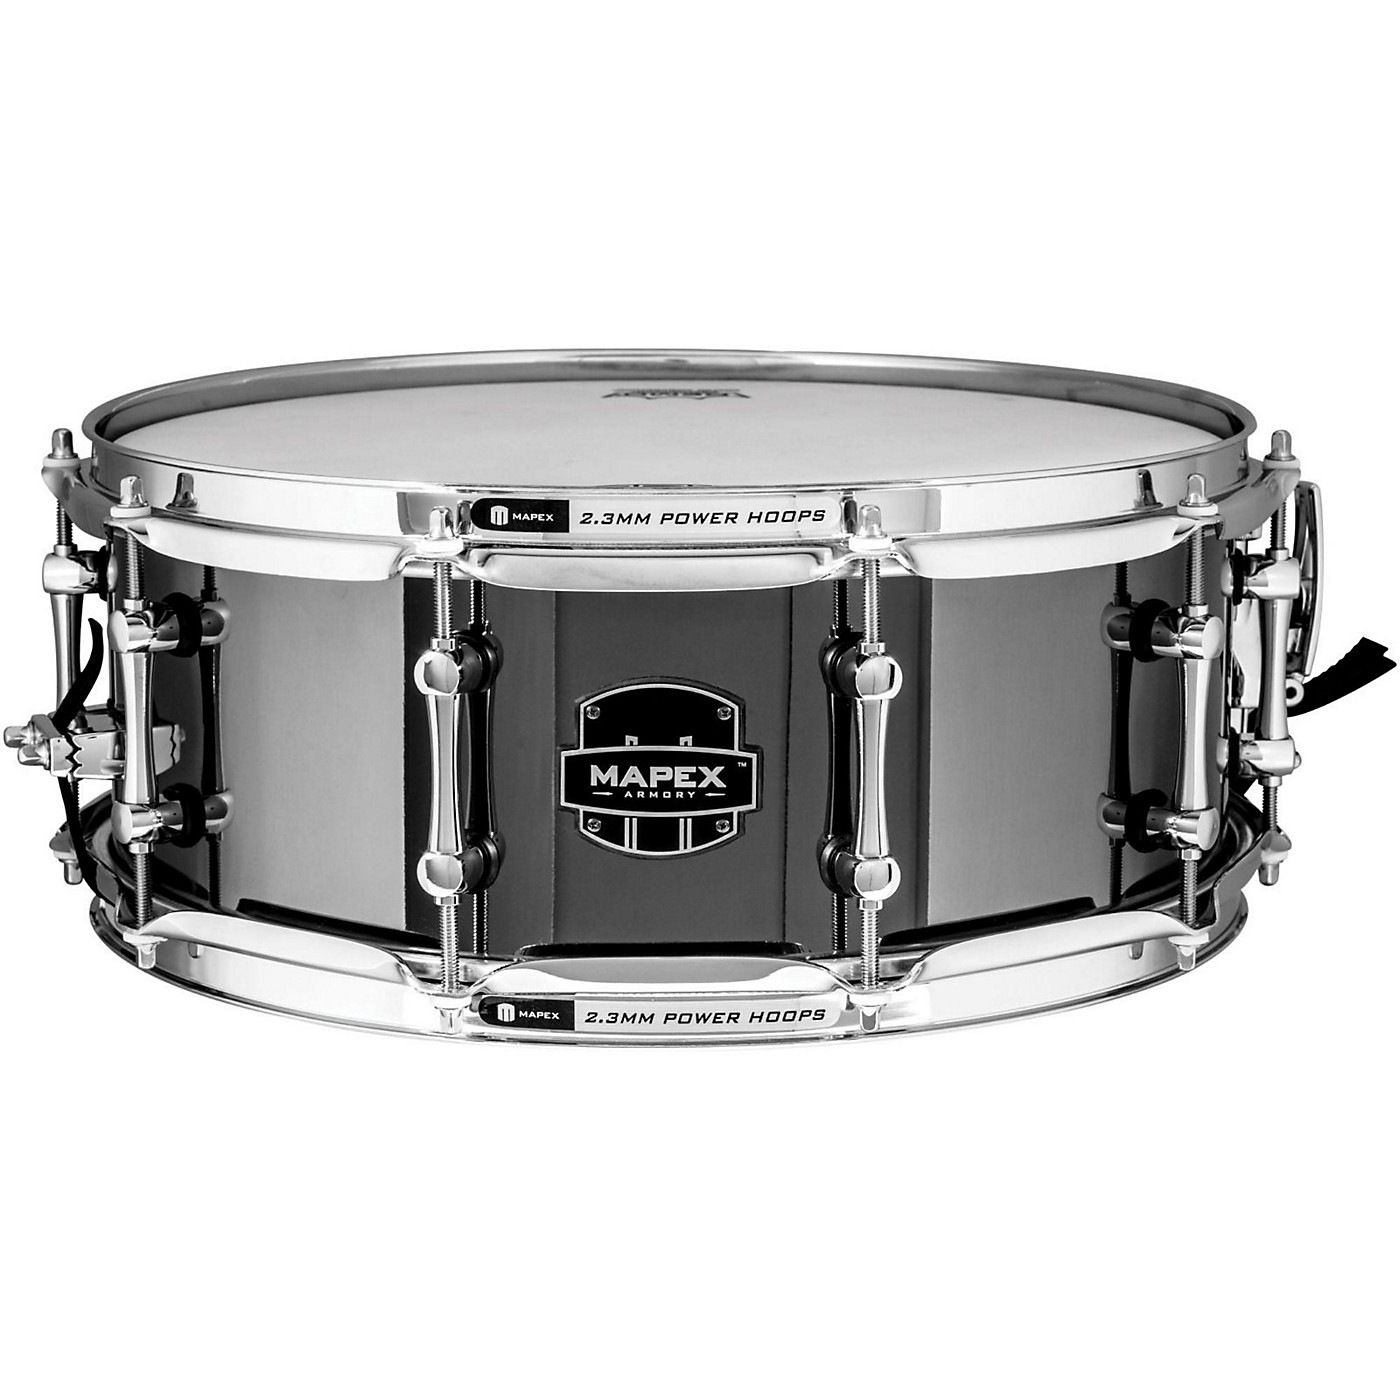 Mapex Armory Series Tomahawk Snare Drum, 14x5.5